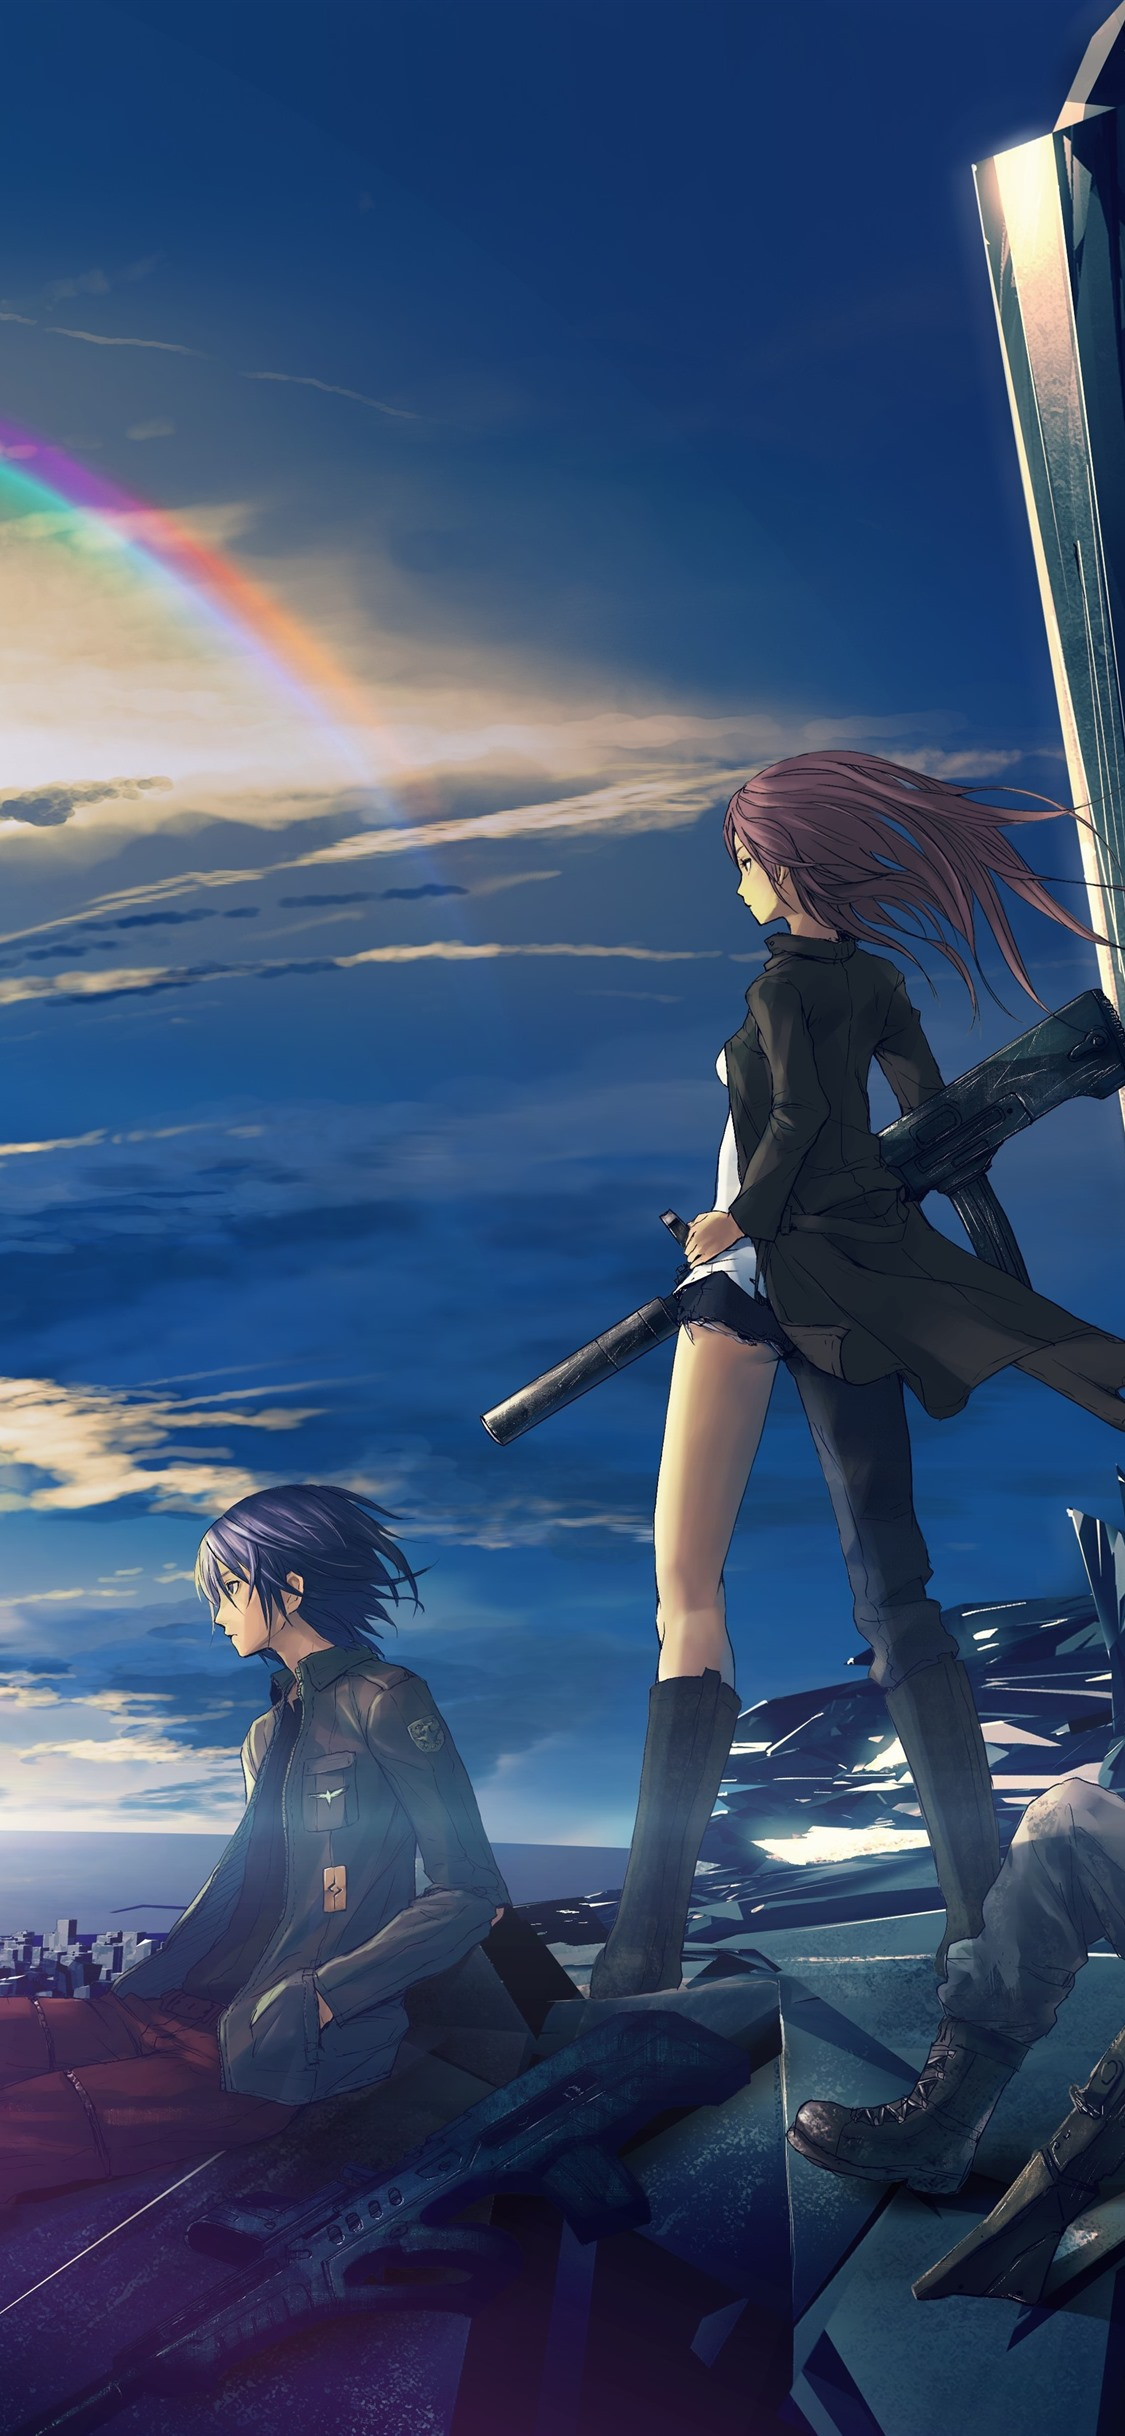 Anime Girl And Boy Future City Rainbow 1242x2688 Iphone 11 Pro Xs Max Wallpaper Background Picture Image